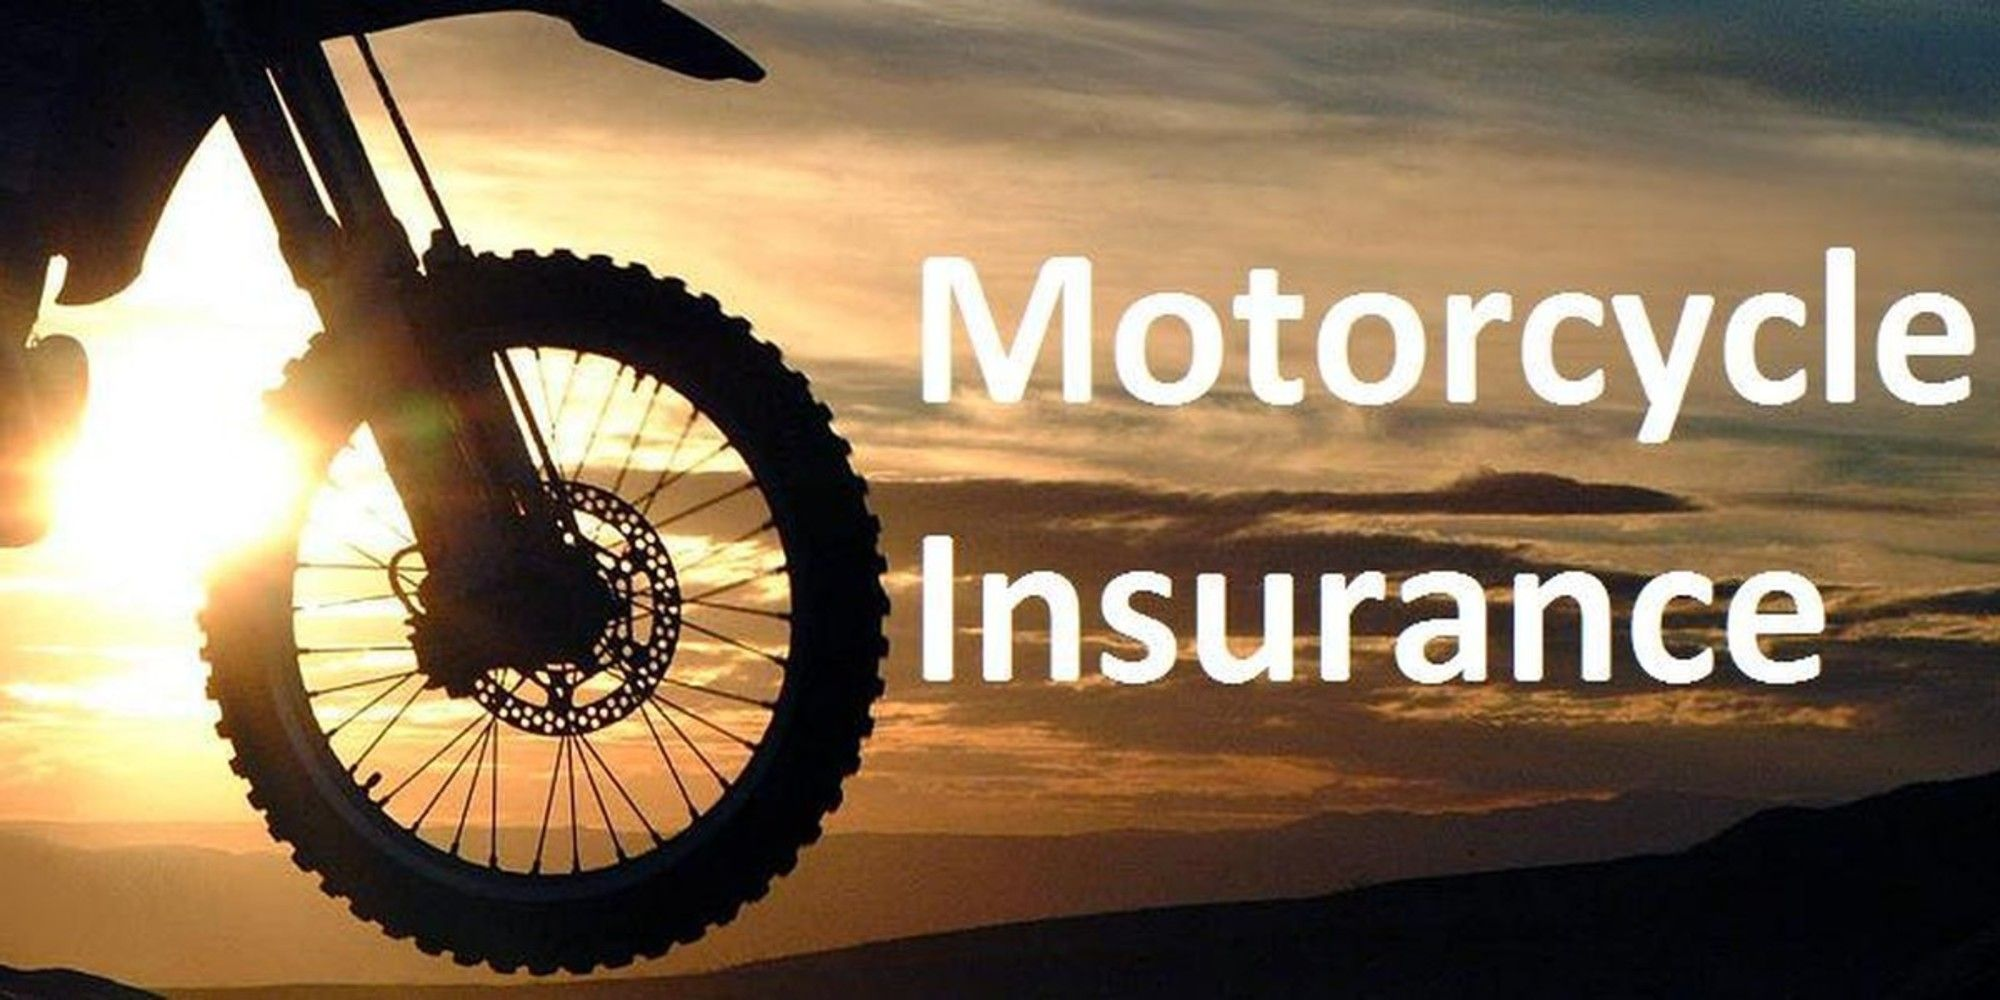 Motorcycle Insurance Quotes Unique Do You Need Motorcycle Insurance In Colorado  Colorado Motorcycle